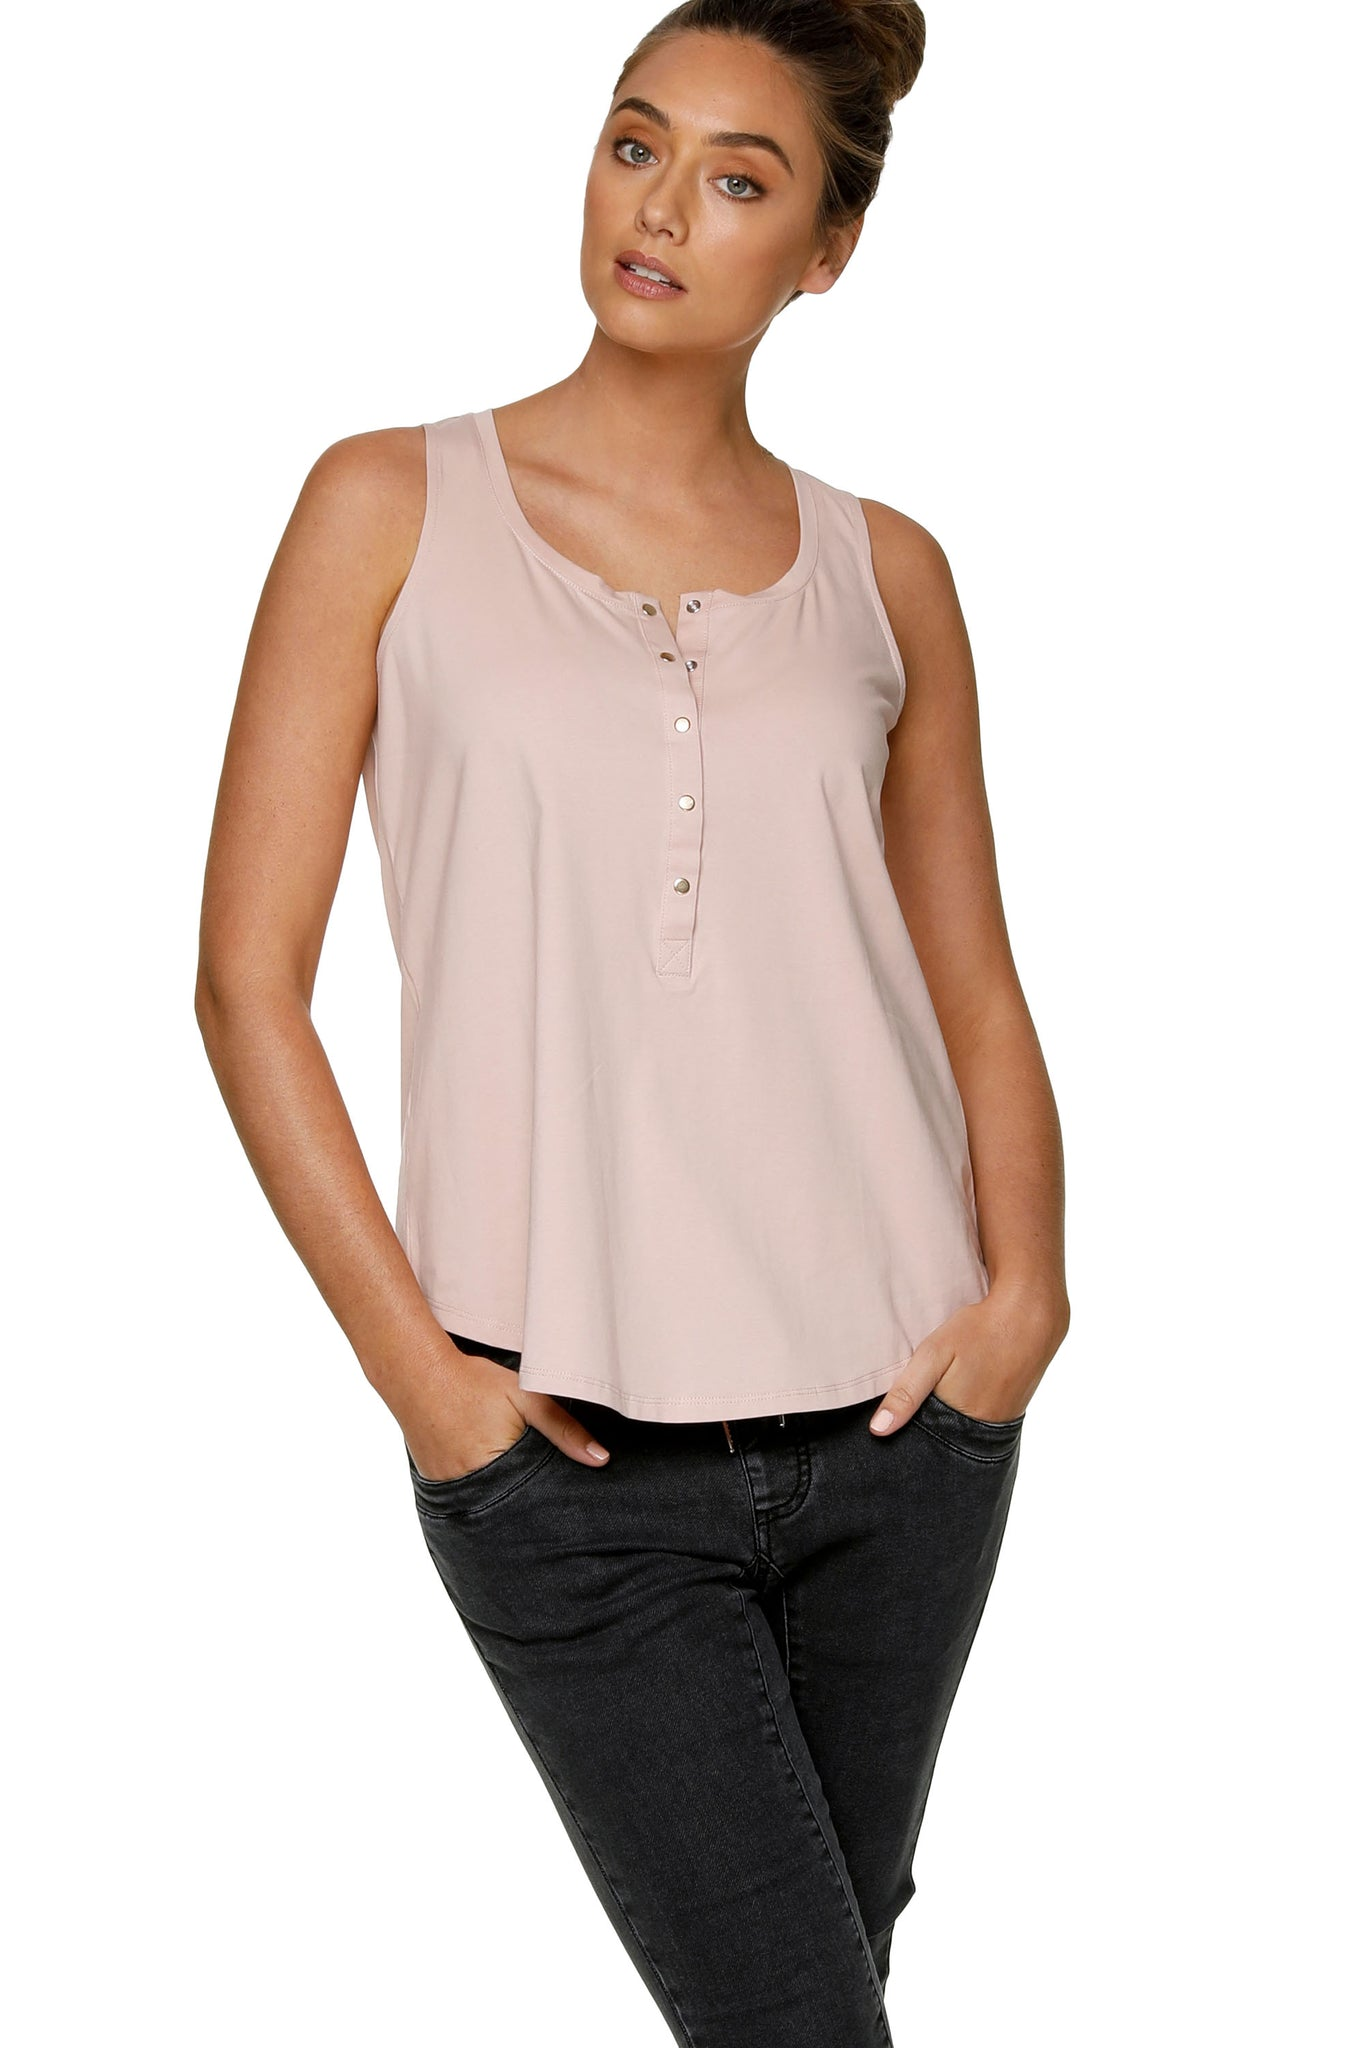 Maternity + Nursing Tank Top - Pink 6